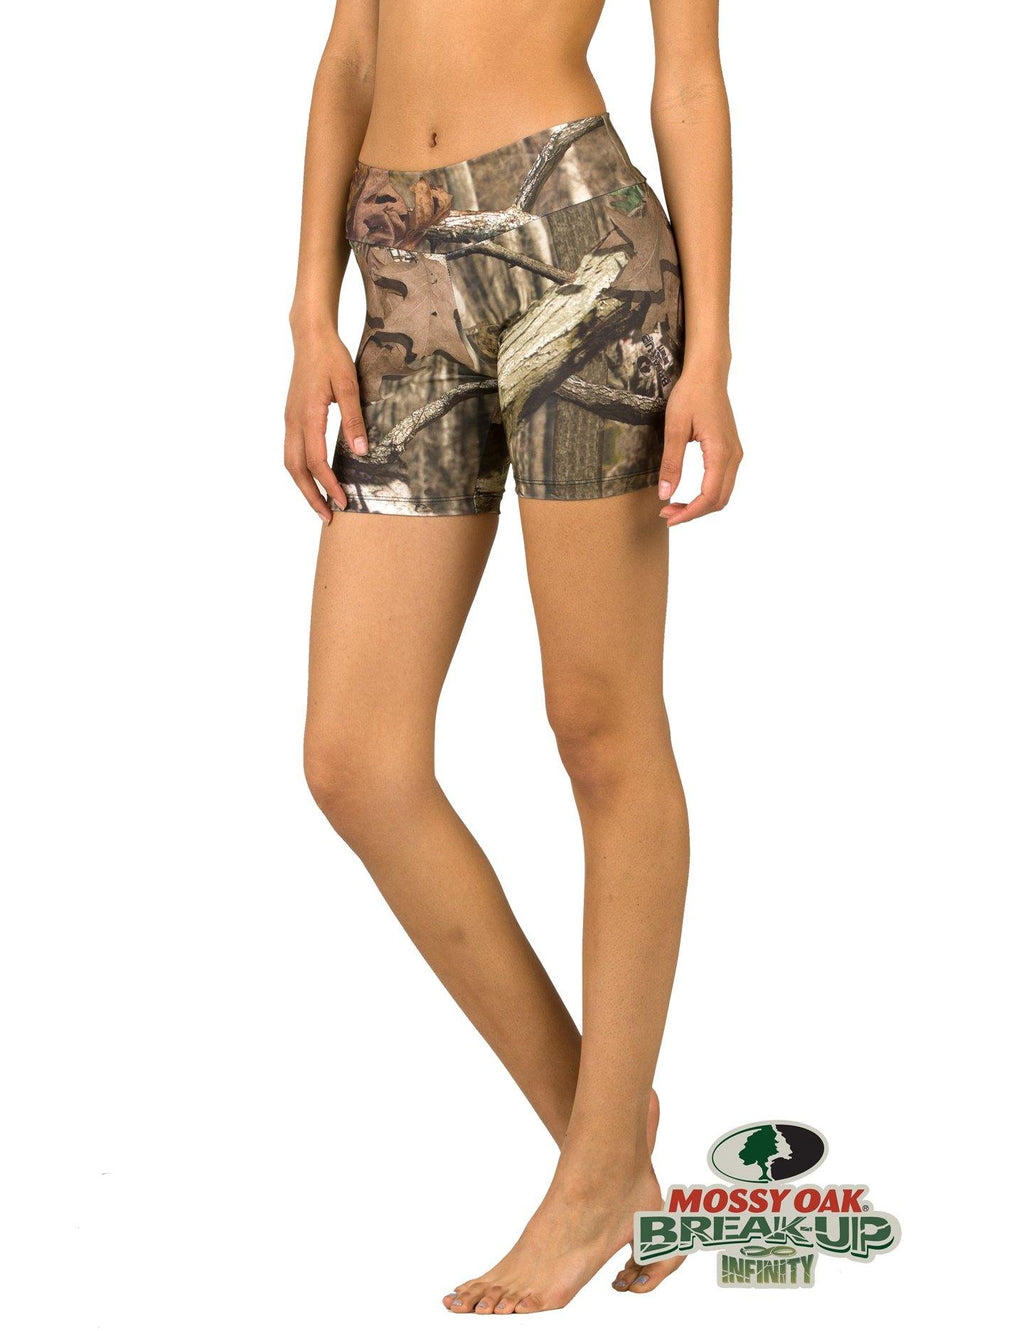 Apsara Shorts Low Waist, Mossy Oak Break-Up Infinity